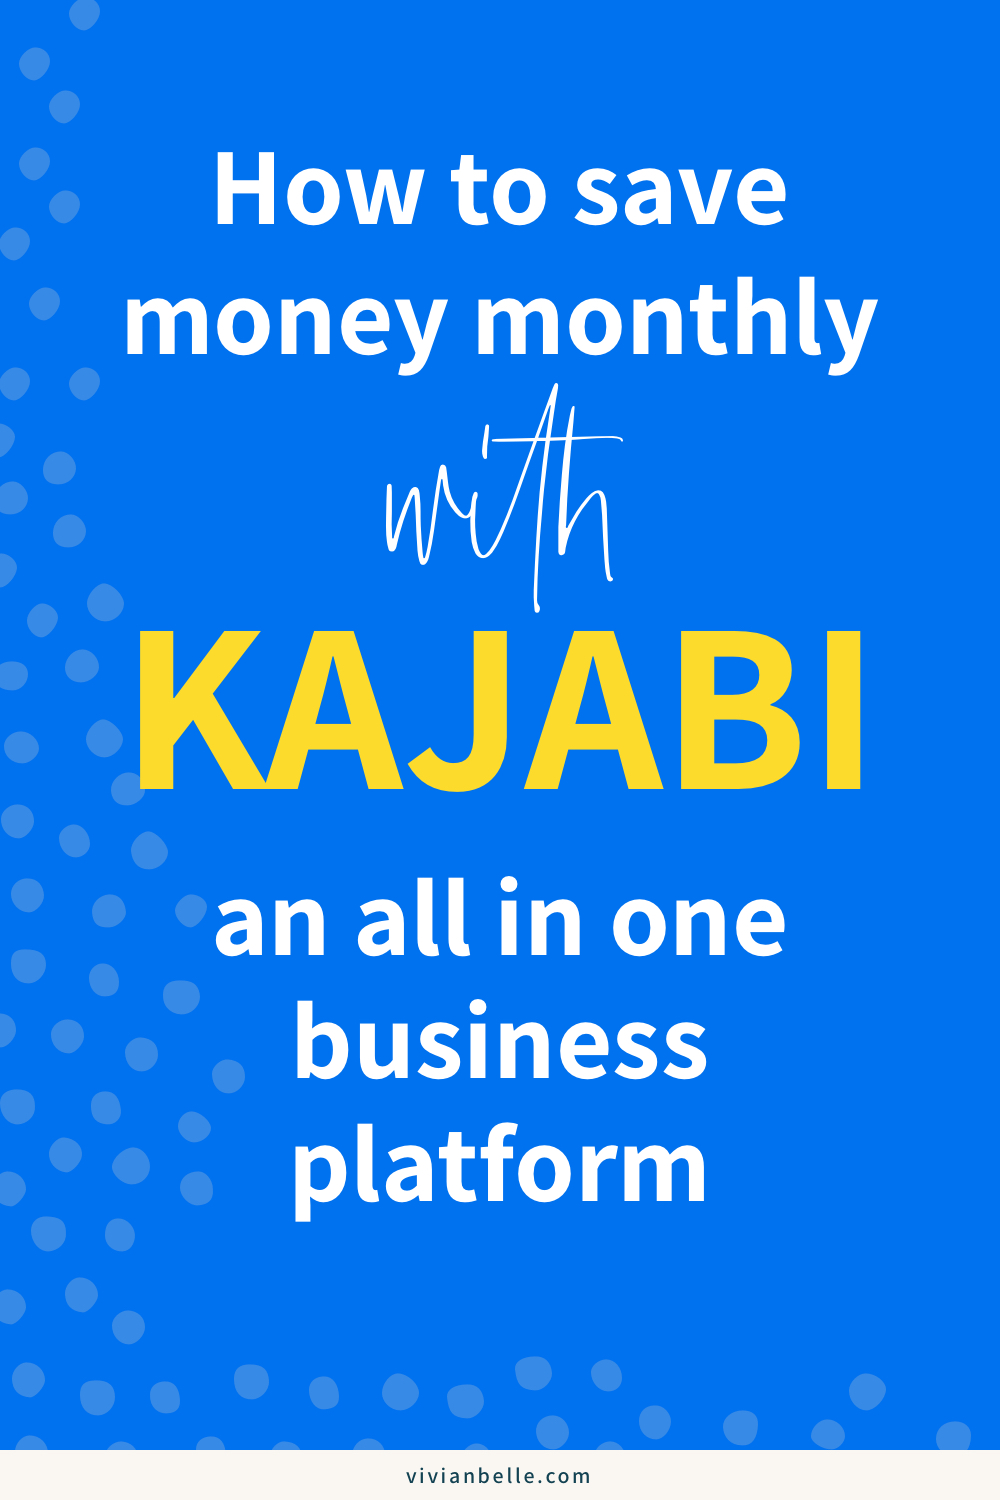 How to save money monthly with Kajabi – an all in one business platform